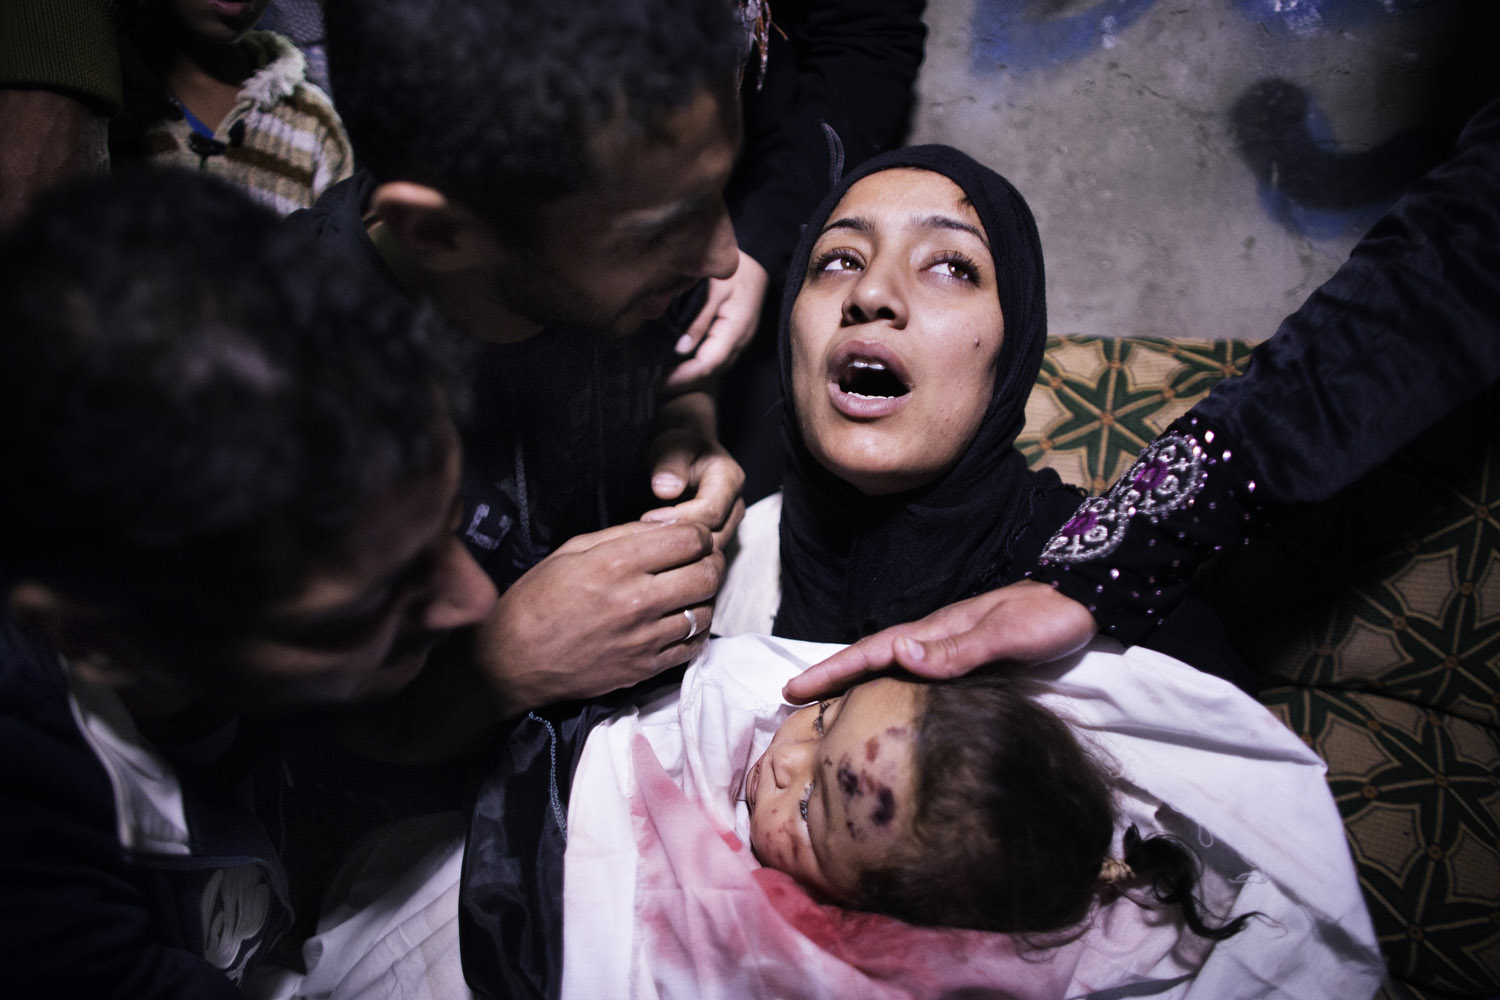 Nov. 16, 2012. The mother of a 10-month-old Palestinian girl killed the day before in an Israeli air strike is comforted by her husband and relatives as she mourns before her daughter's funeral in Gaza City.